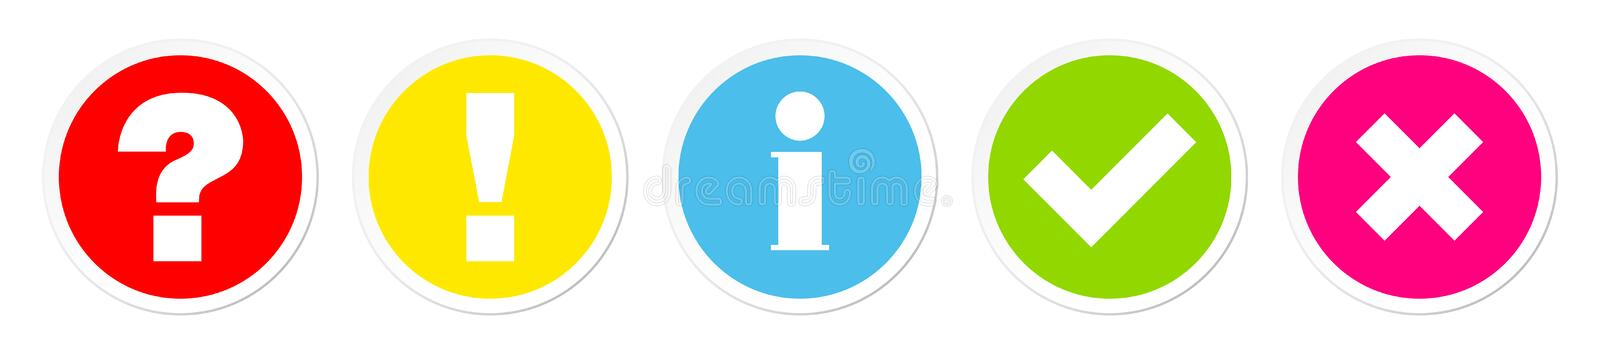 Five Buttons Question Answer Information Check Marks Color stock illustration